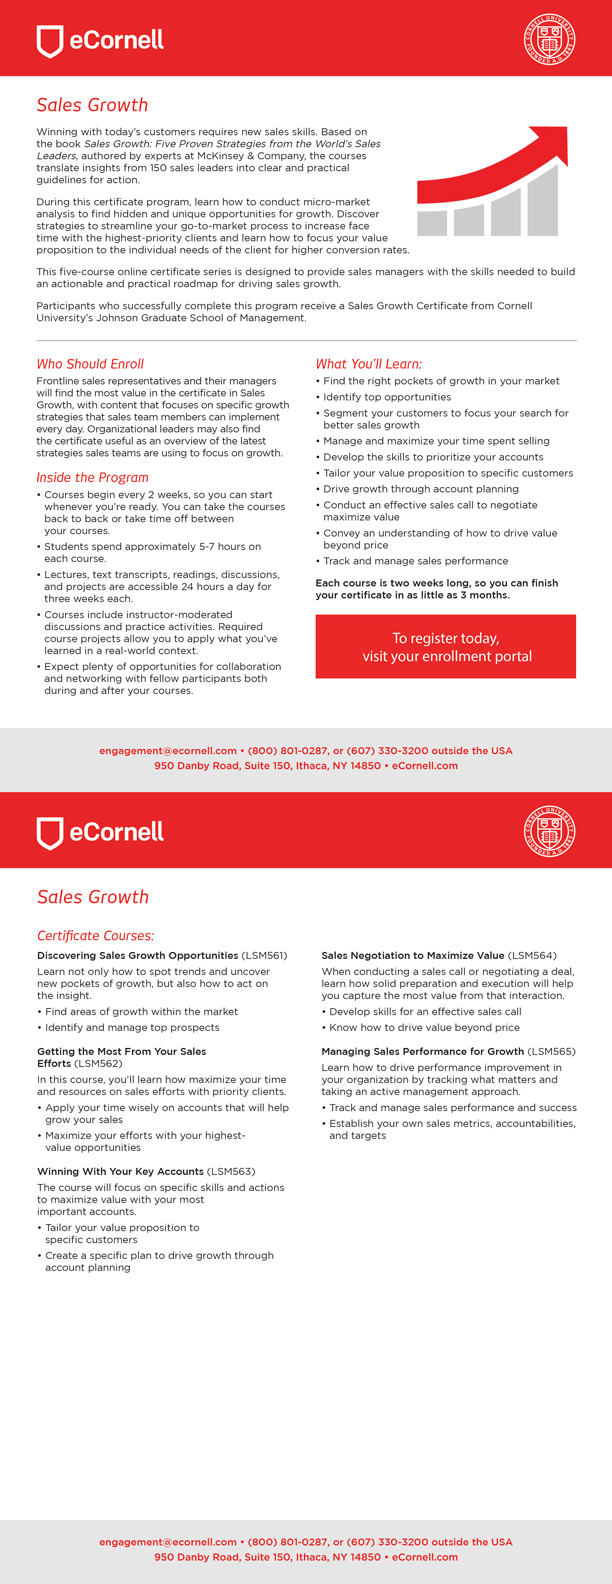 Sales Growth Flyers for Corporations